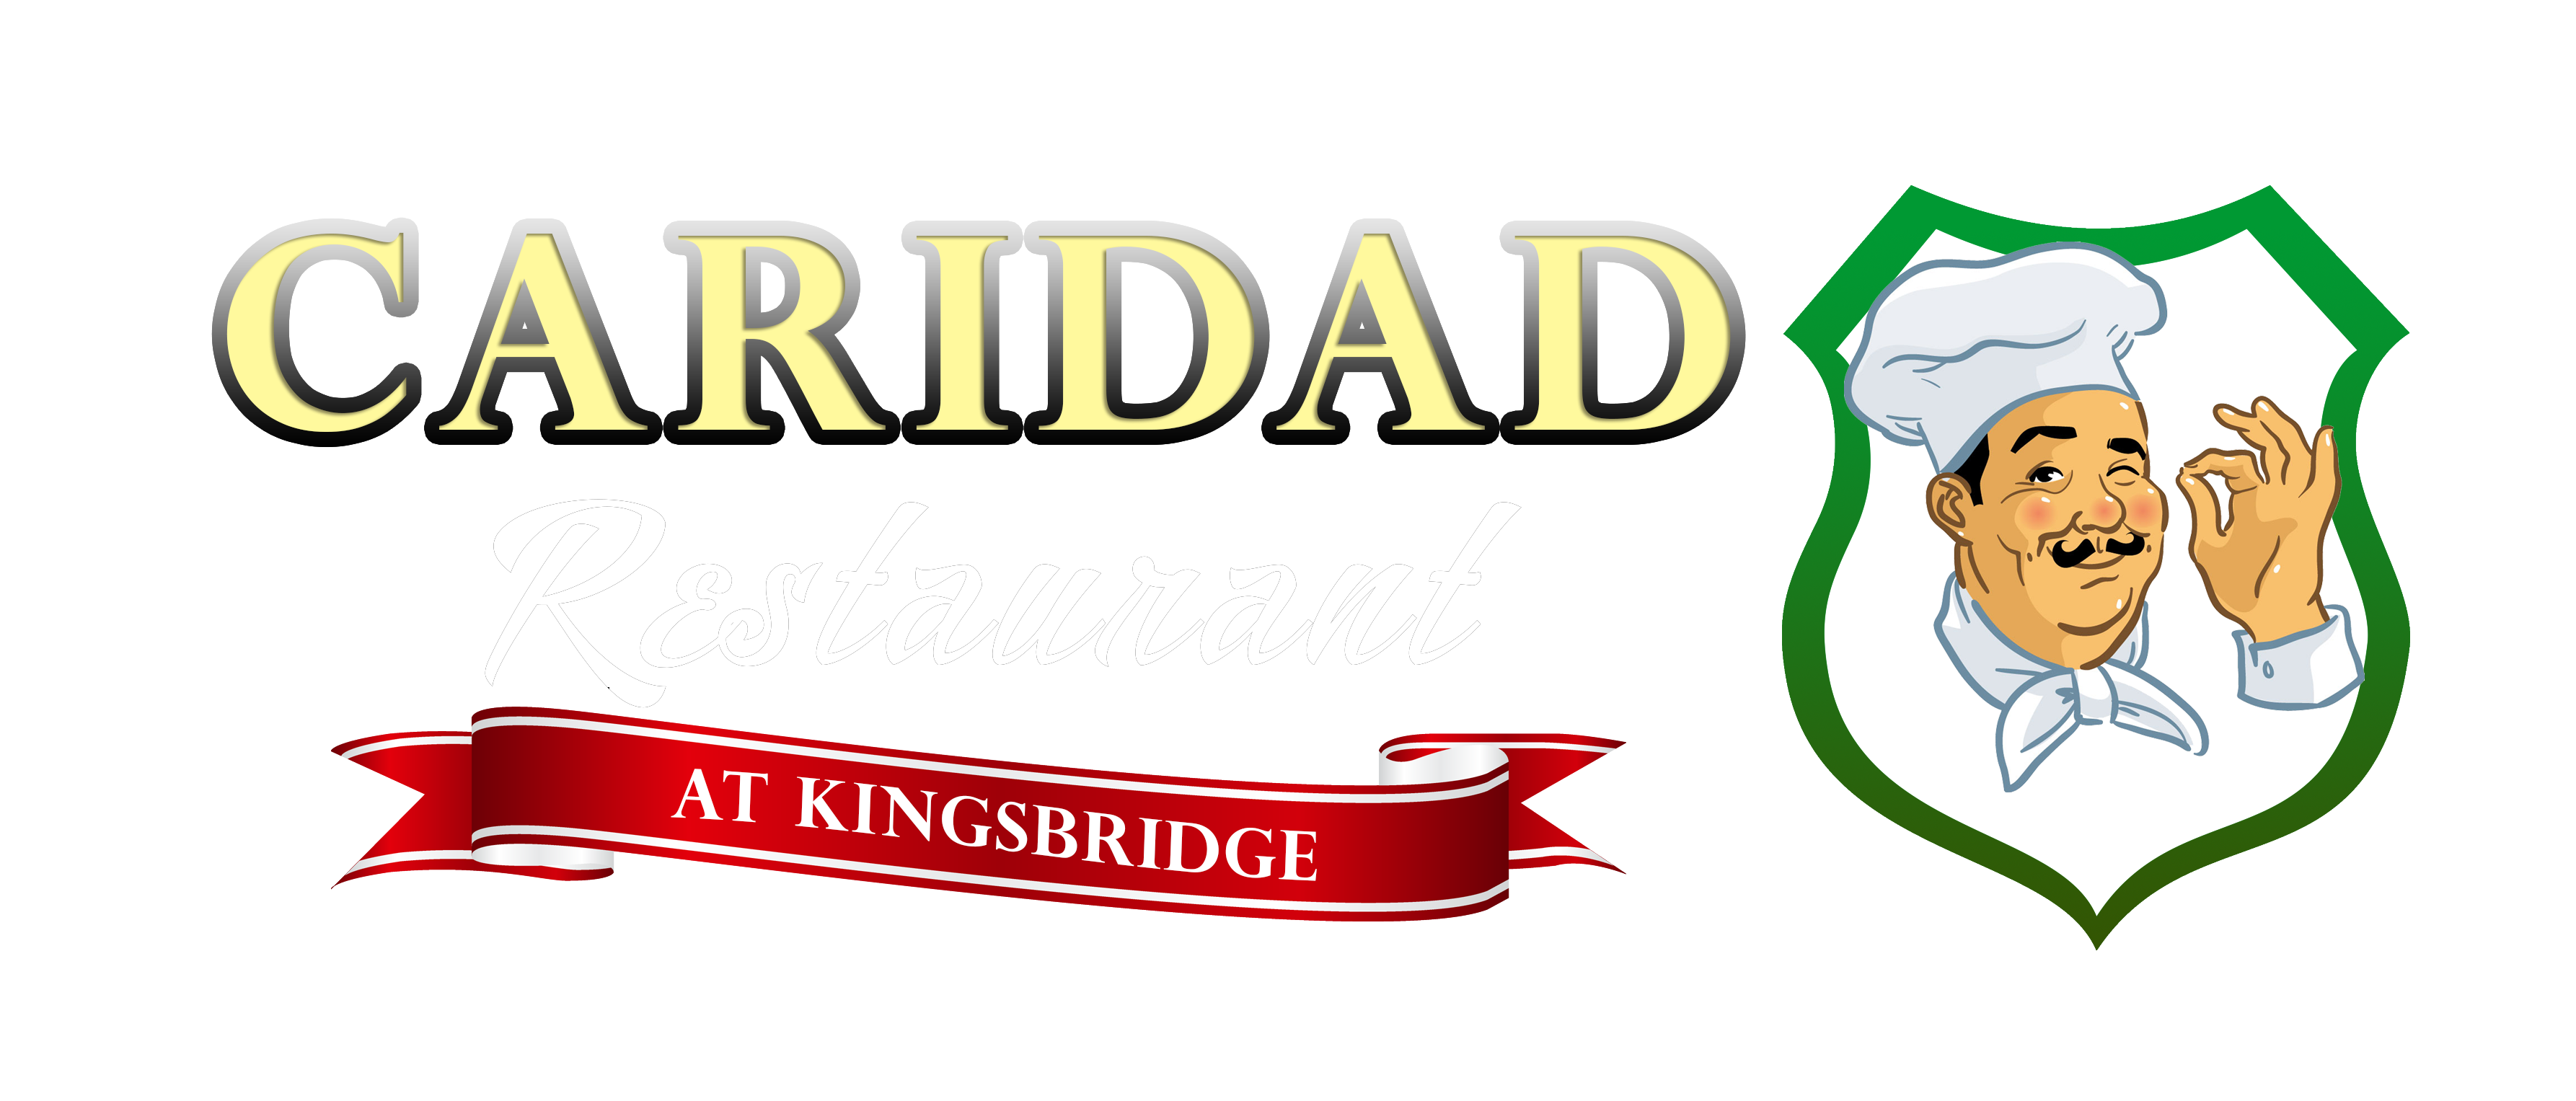 Grilling clipart food puerto rico. Caridad at kingsbridge restaurant